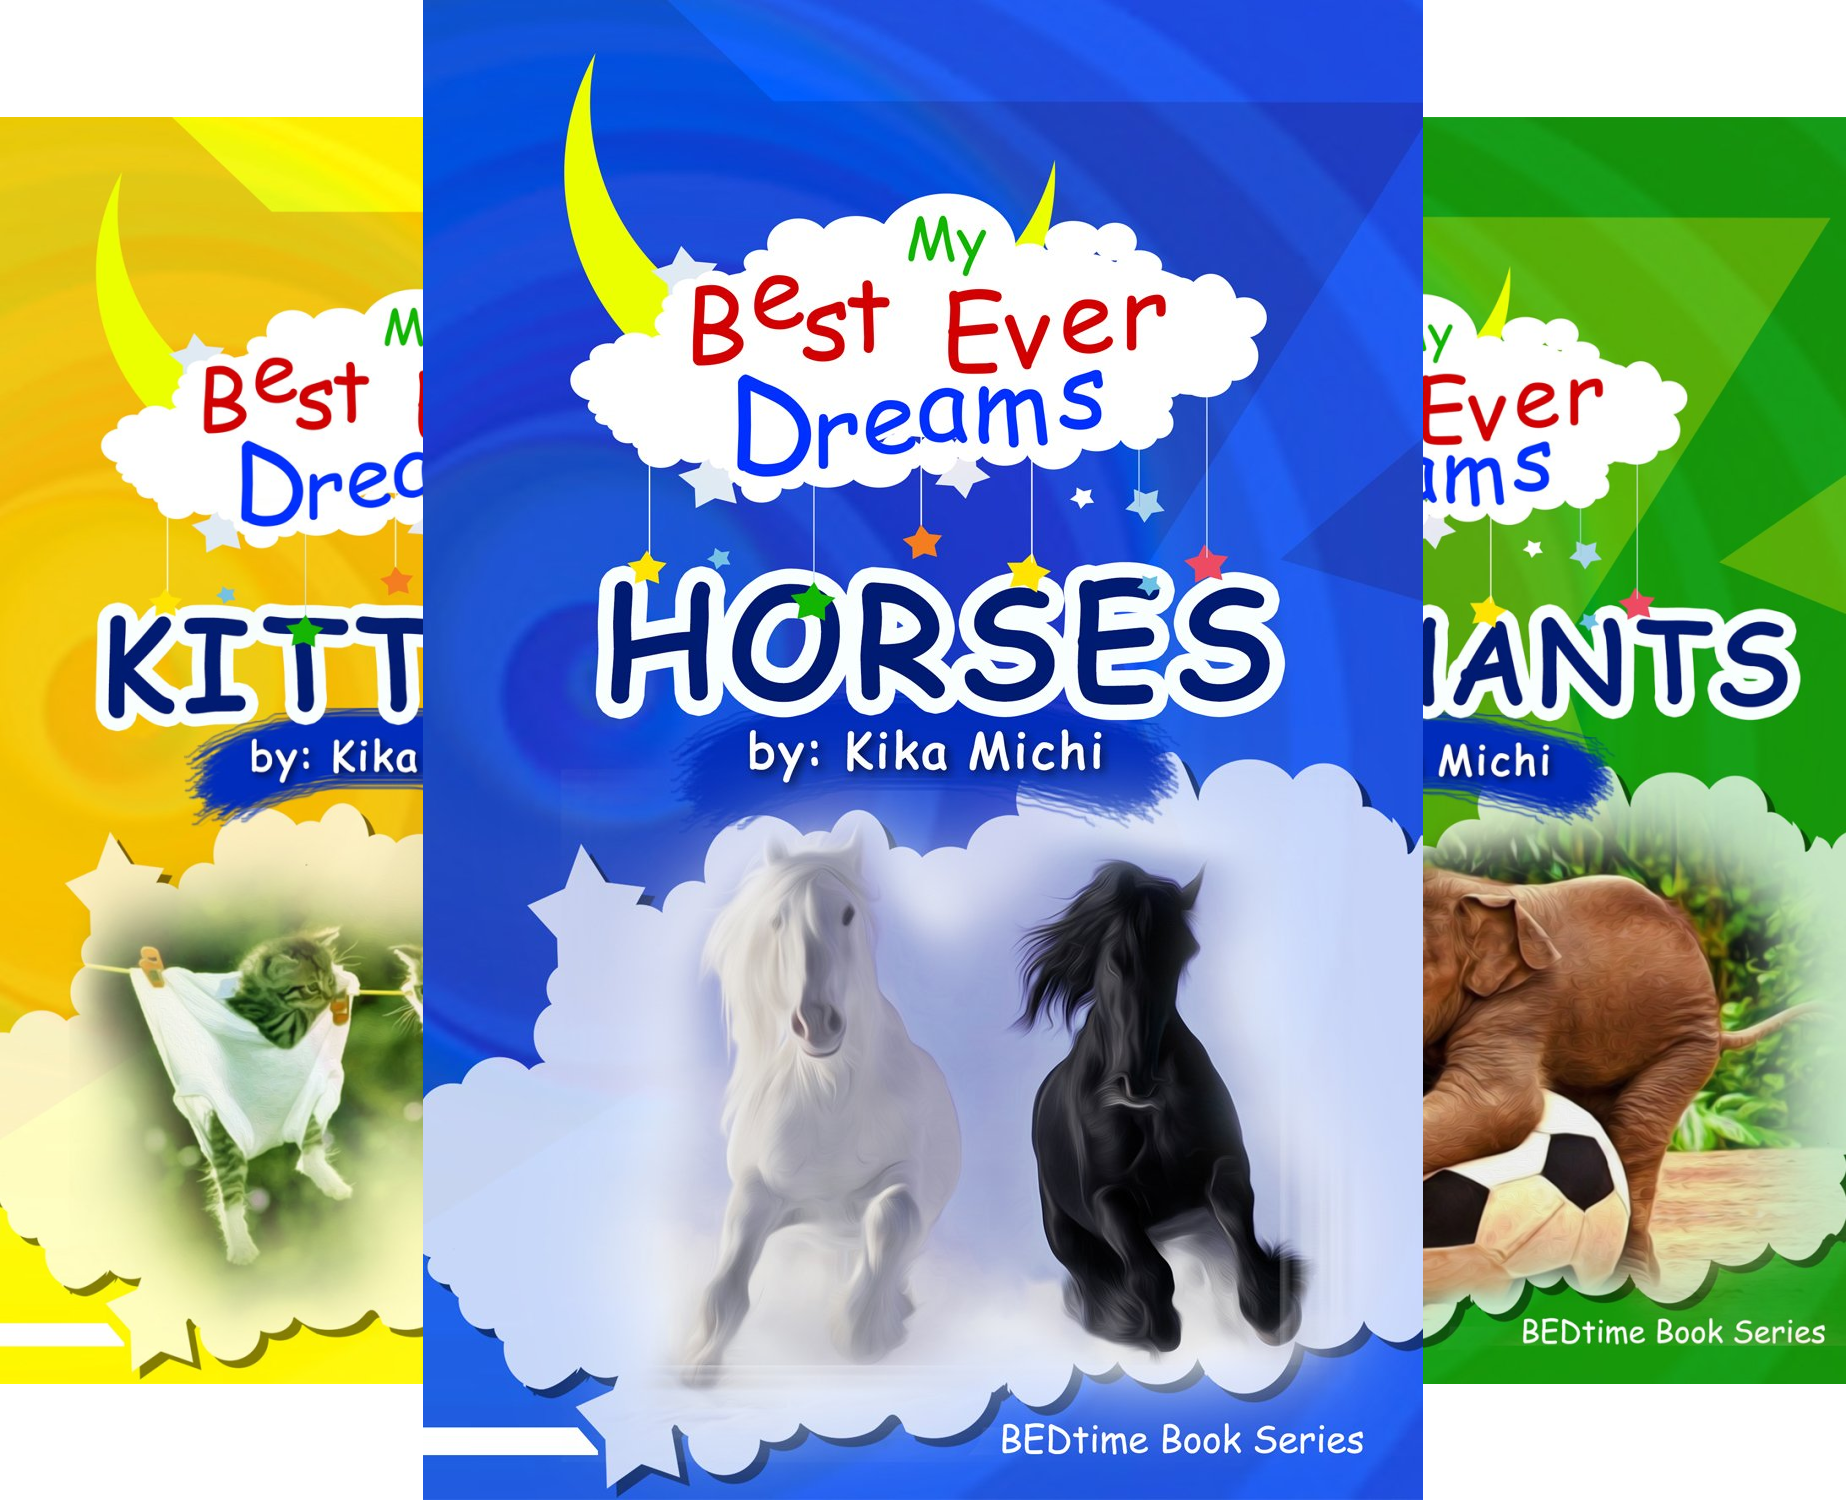 BEDtime Book Series (My Best Ever Dreams) (18 Book Series) by  (Image #1)